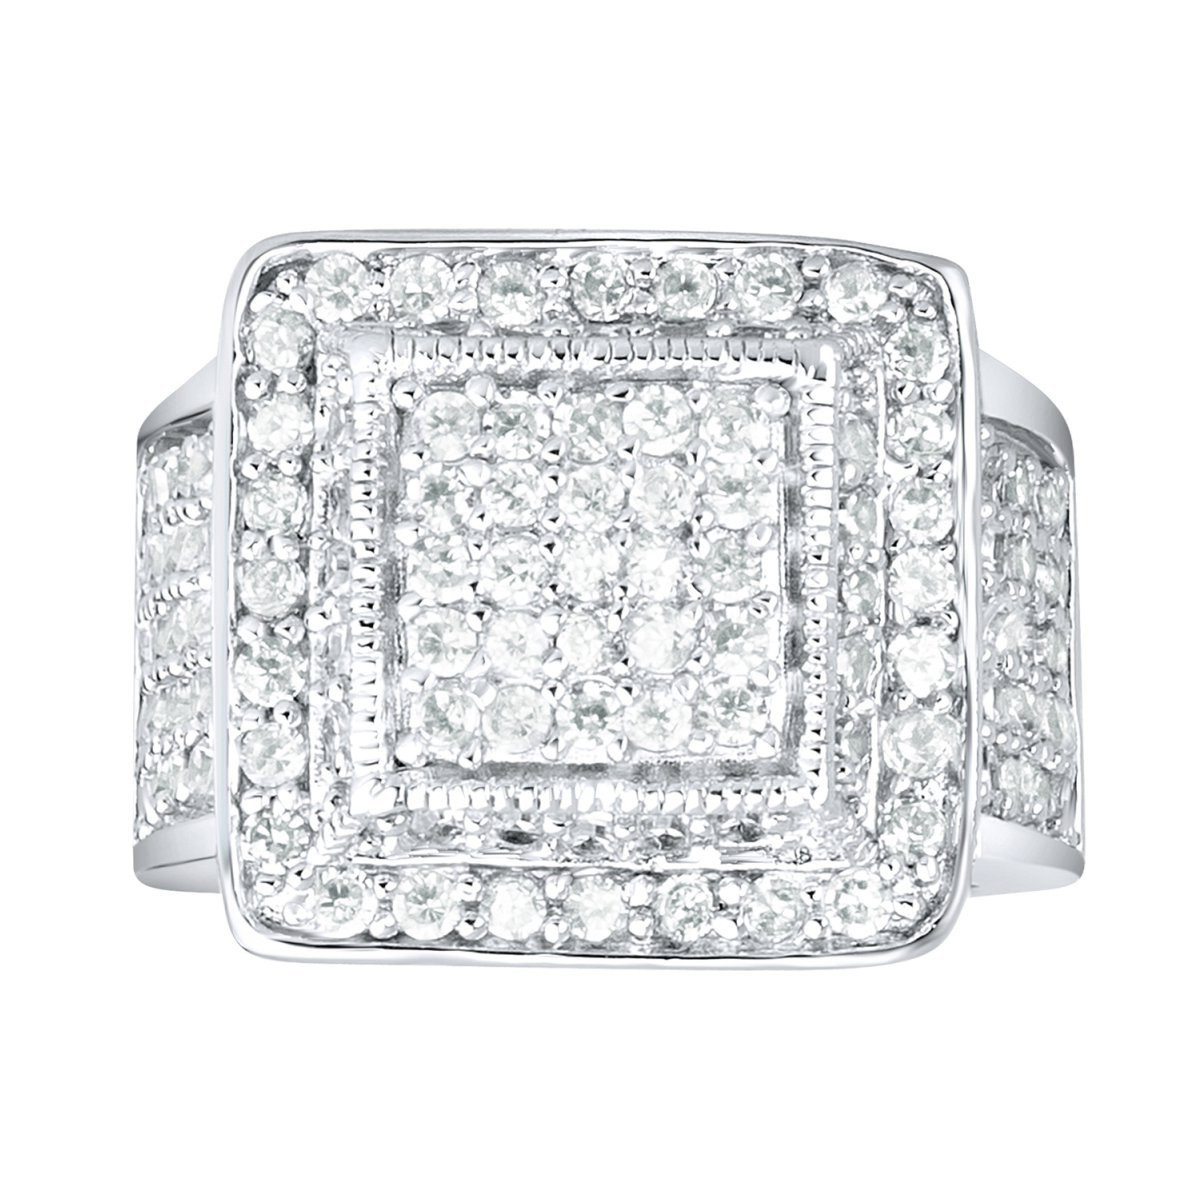 Iced Out Sterling 925 Silver Pave Ring - KING BLING - 10